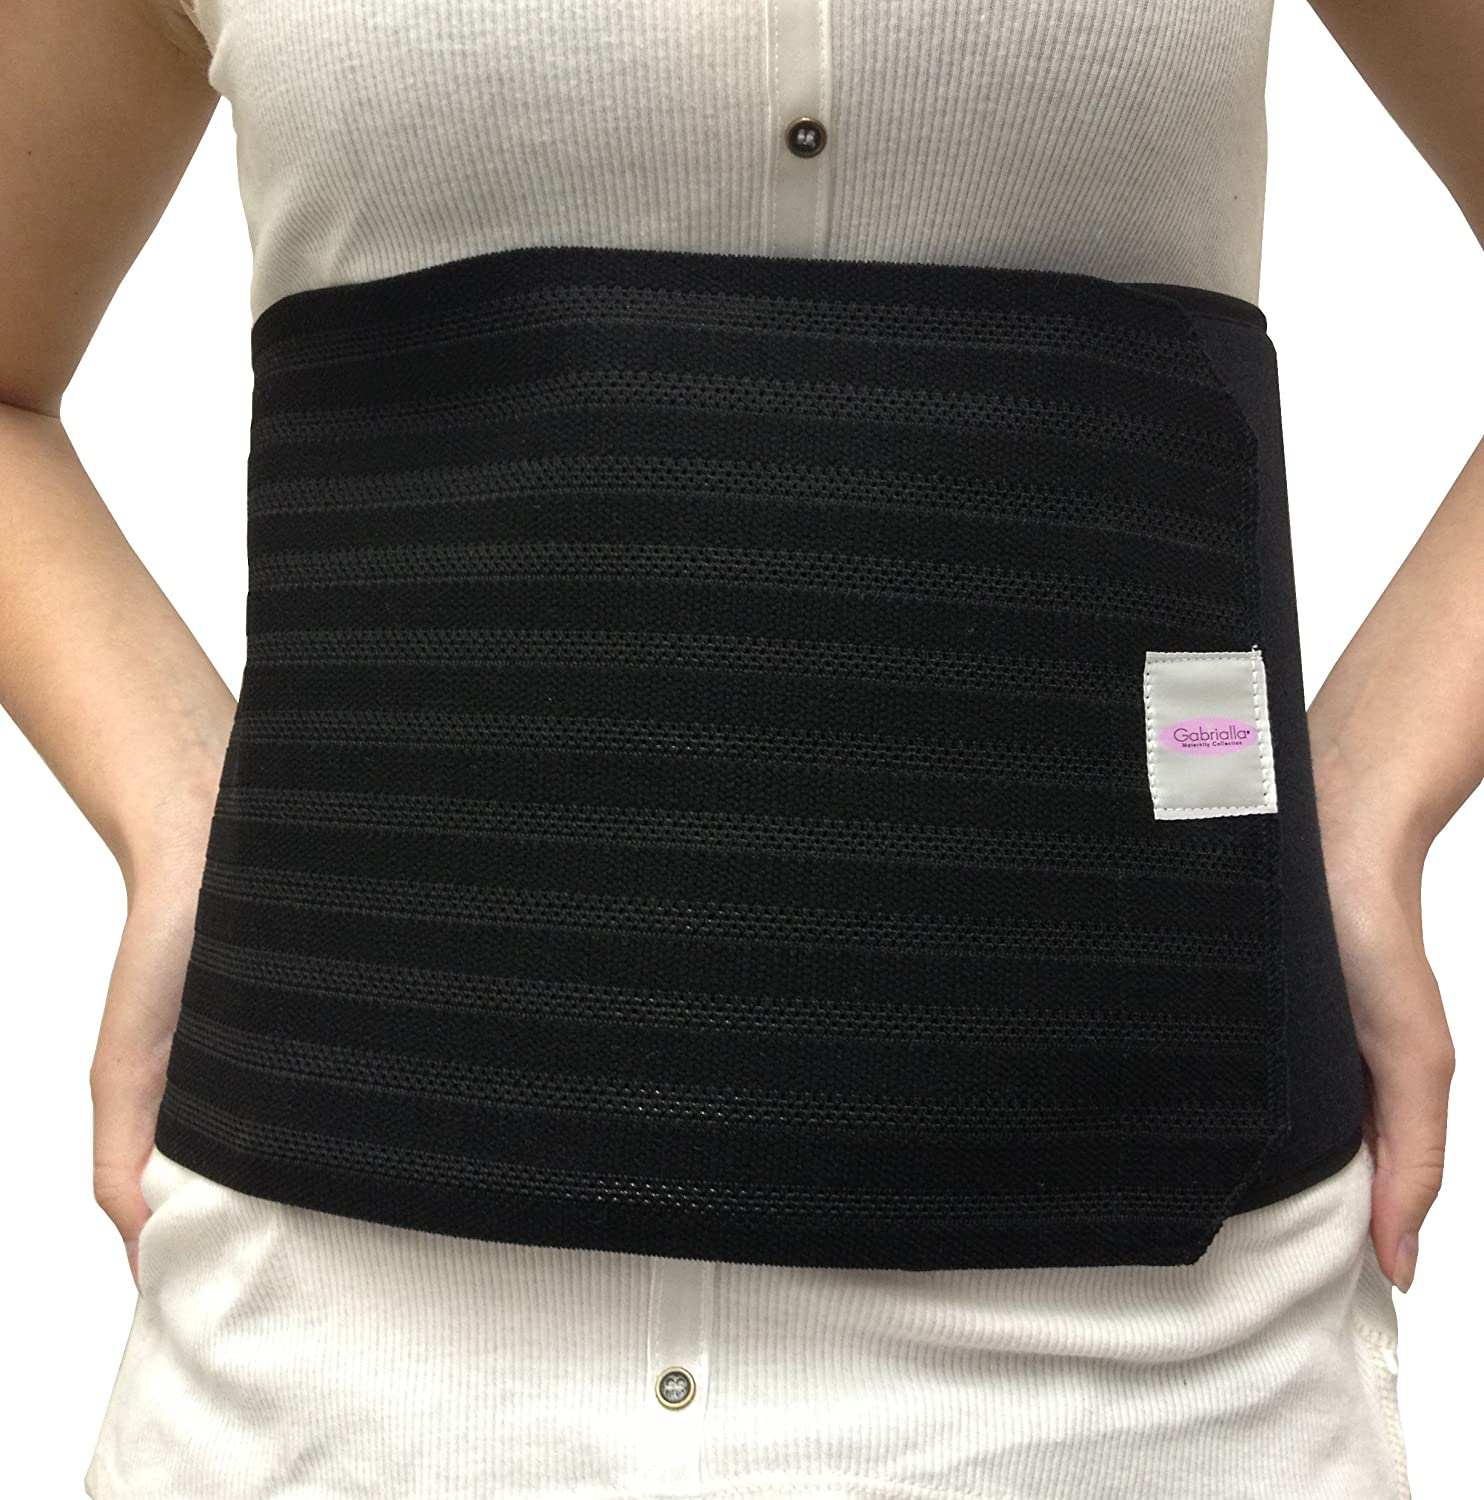 Amazon.com: Gabrialla Breathable Abdominal Support Binder-Black-XX-Large: Health & Personal Care